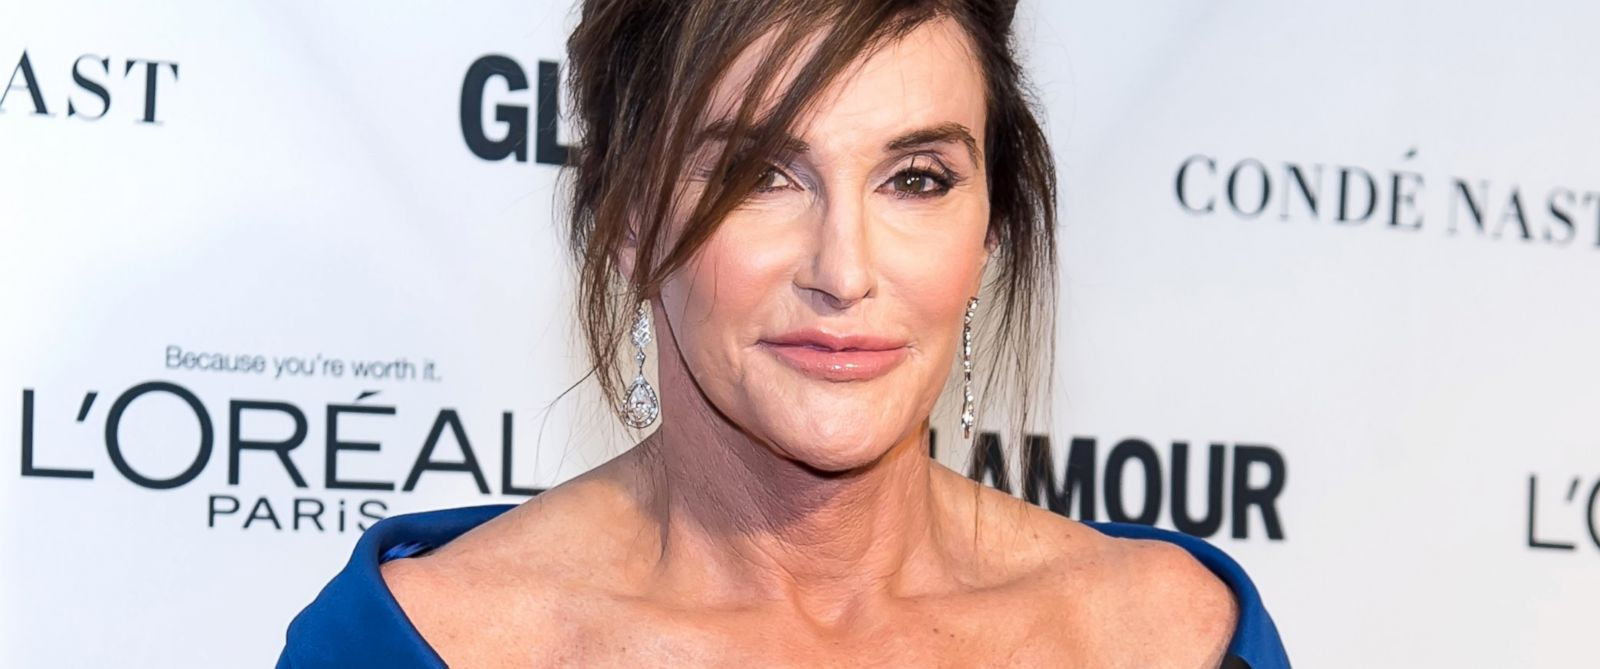 PHOTO: Caitlyn Jenner attends Glamours 25th Anniversary Women Of The Year Awards at Carnegie Hall, Nov. 9, 2015, in New York City.